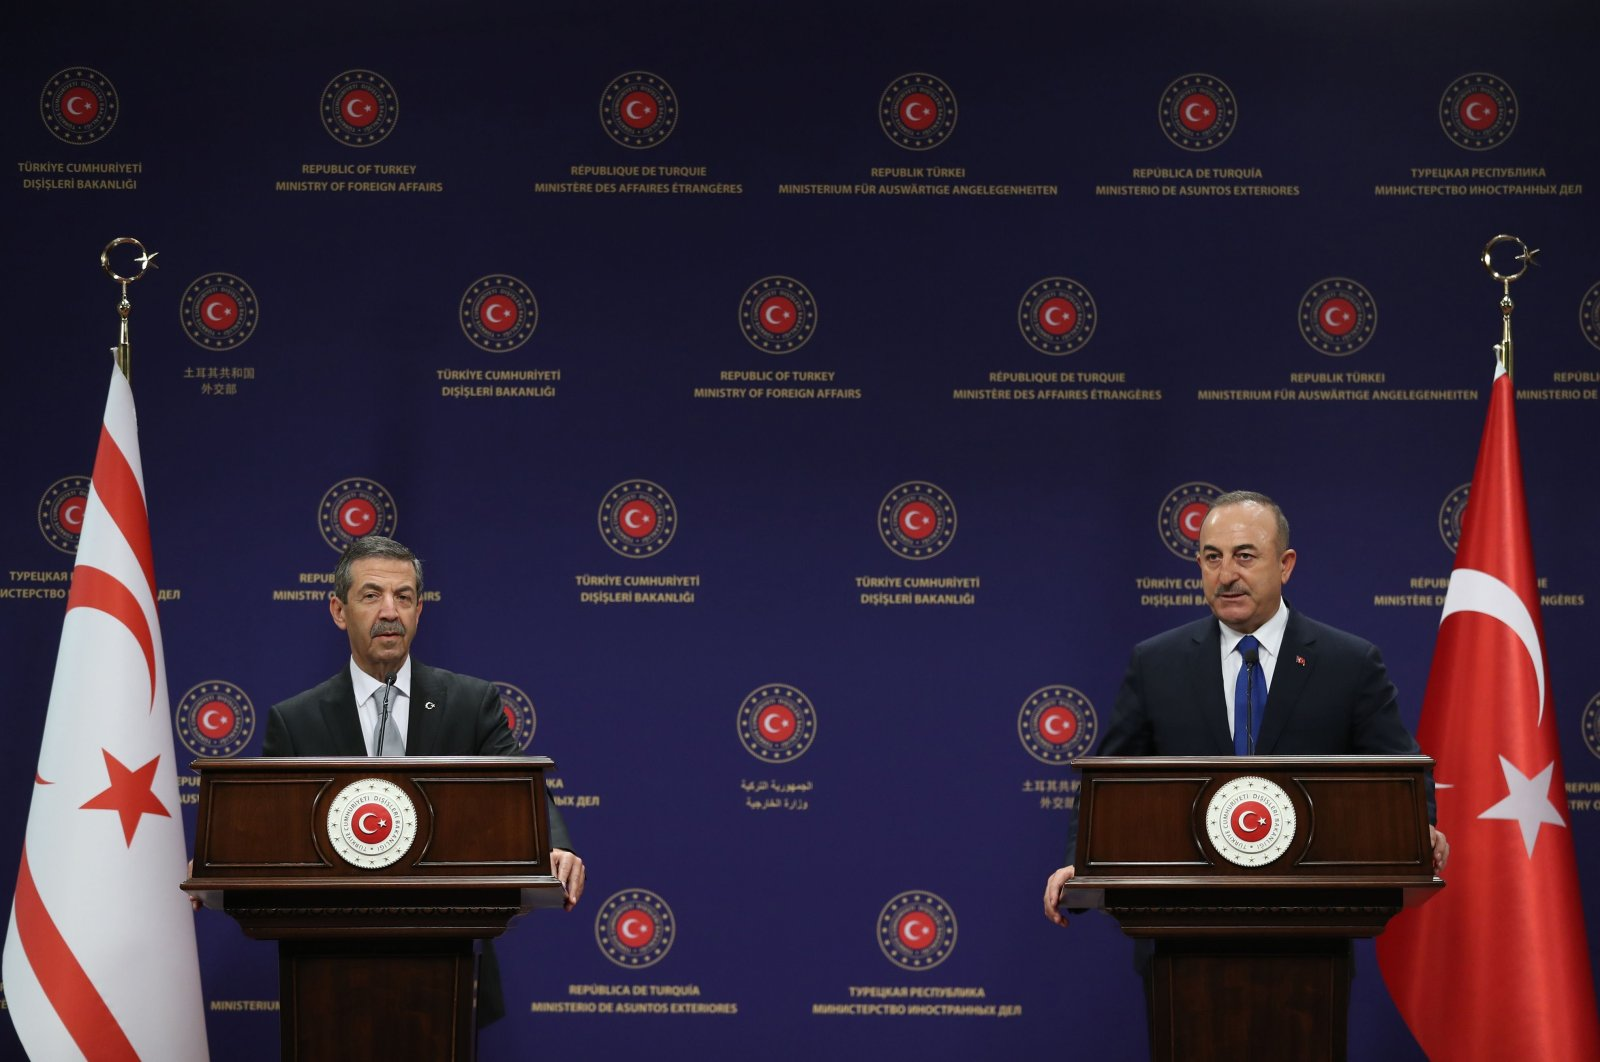 Turkish Cypriot Foreign Affairs Minister Tahsin Ertuğruloğlu (L) and Turkish Foreign Minister Mevlüt Çavuşoğlu hold a joint news conference after their meeting in Ankara, Turkey, Jan. 11, 2021. (AFP File Photo)